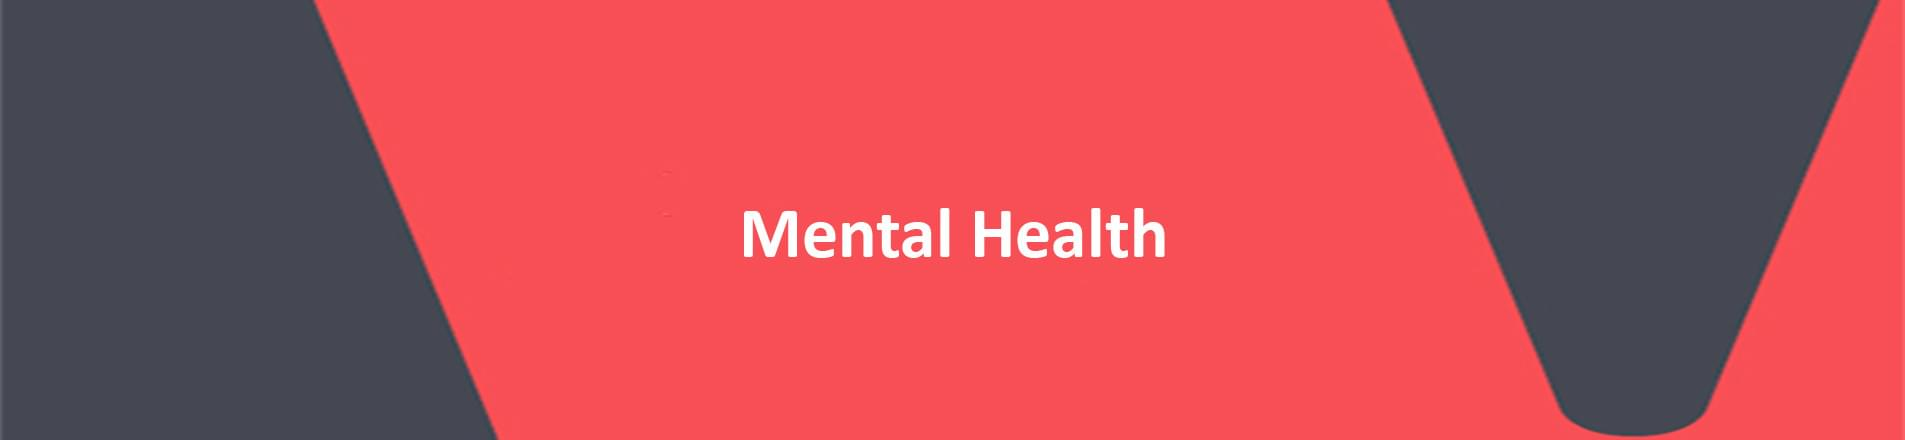 "Image VERCIDA banner.  Red background with the words ""Mental Health"" spelled in white letters."